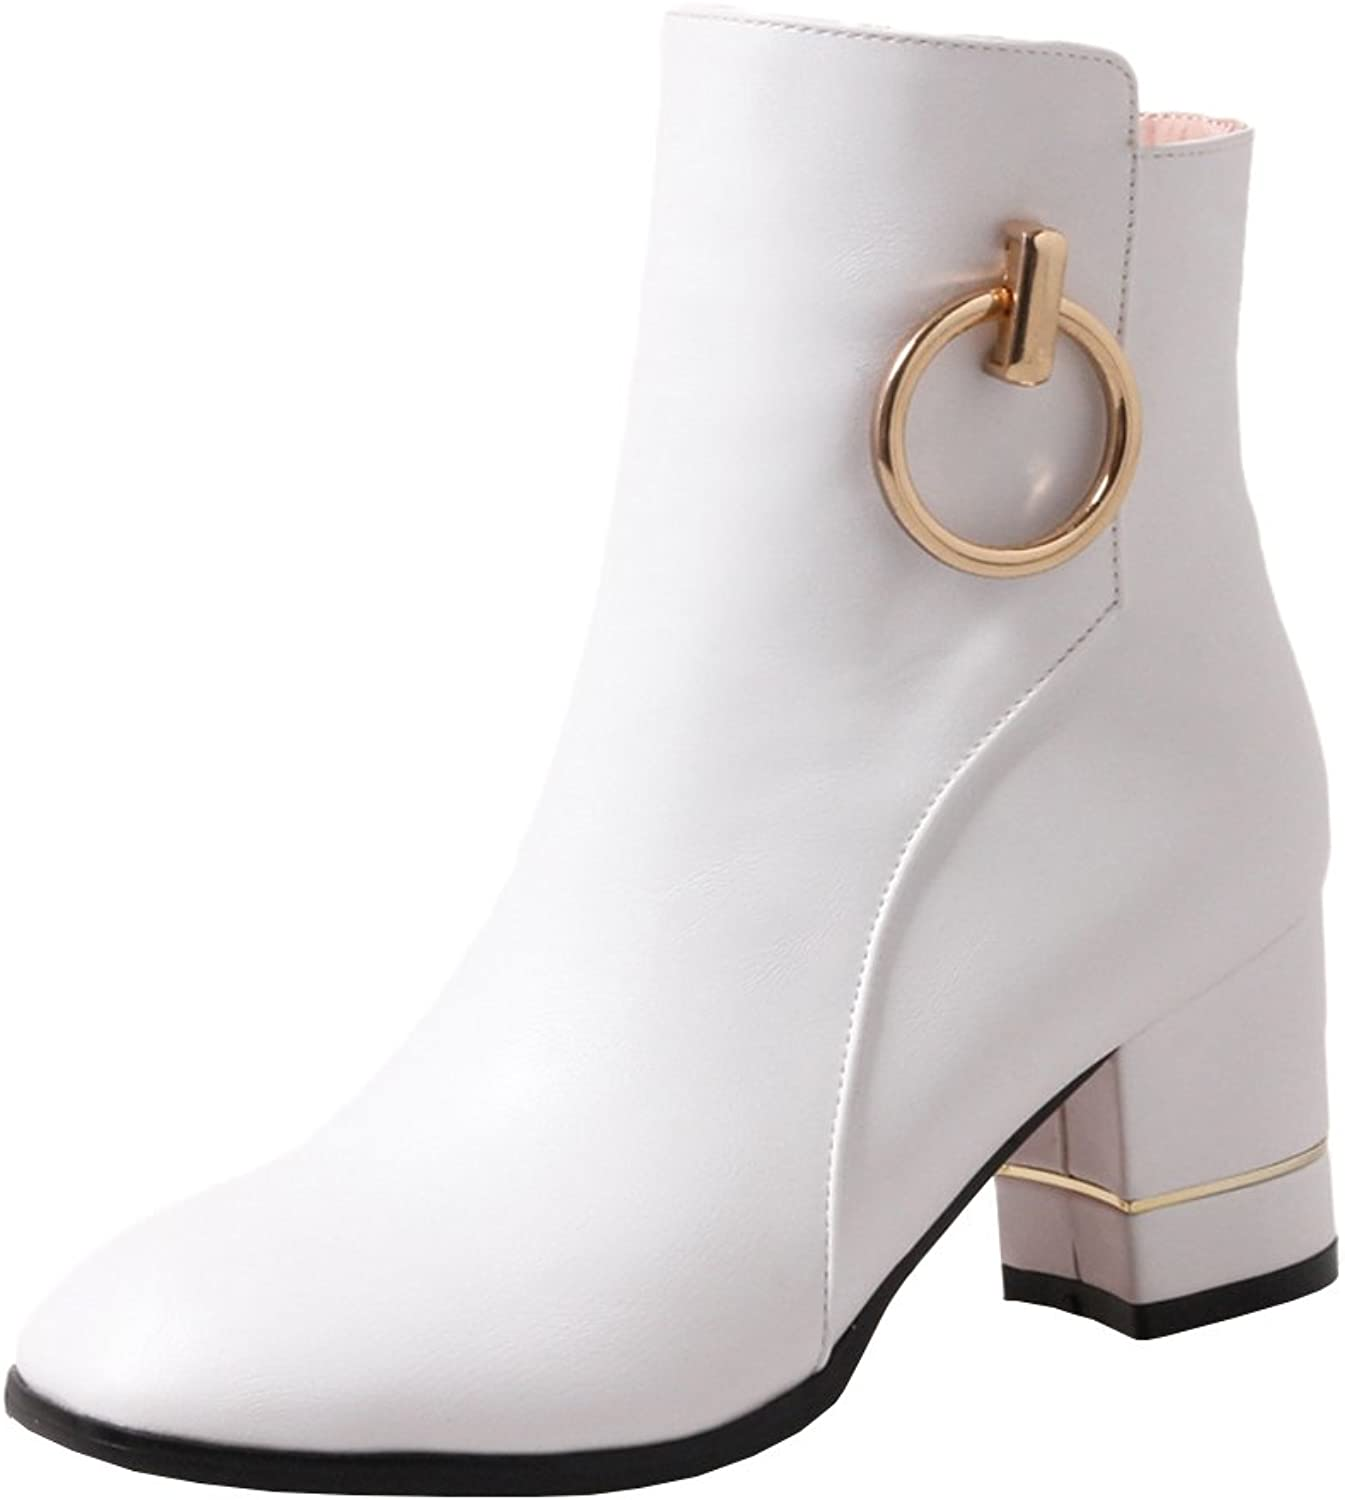 Agodor Womens Mid Chunky Heel Ankle Boots with Zip Classic Autumn Winter Metal shoes